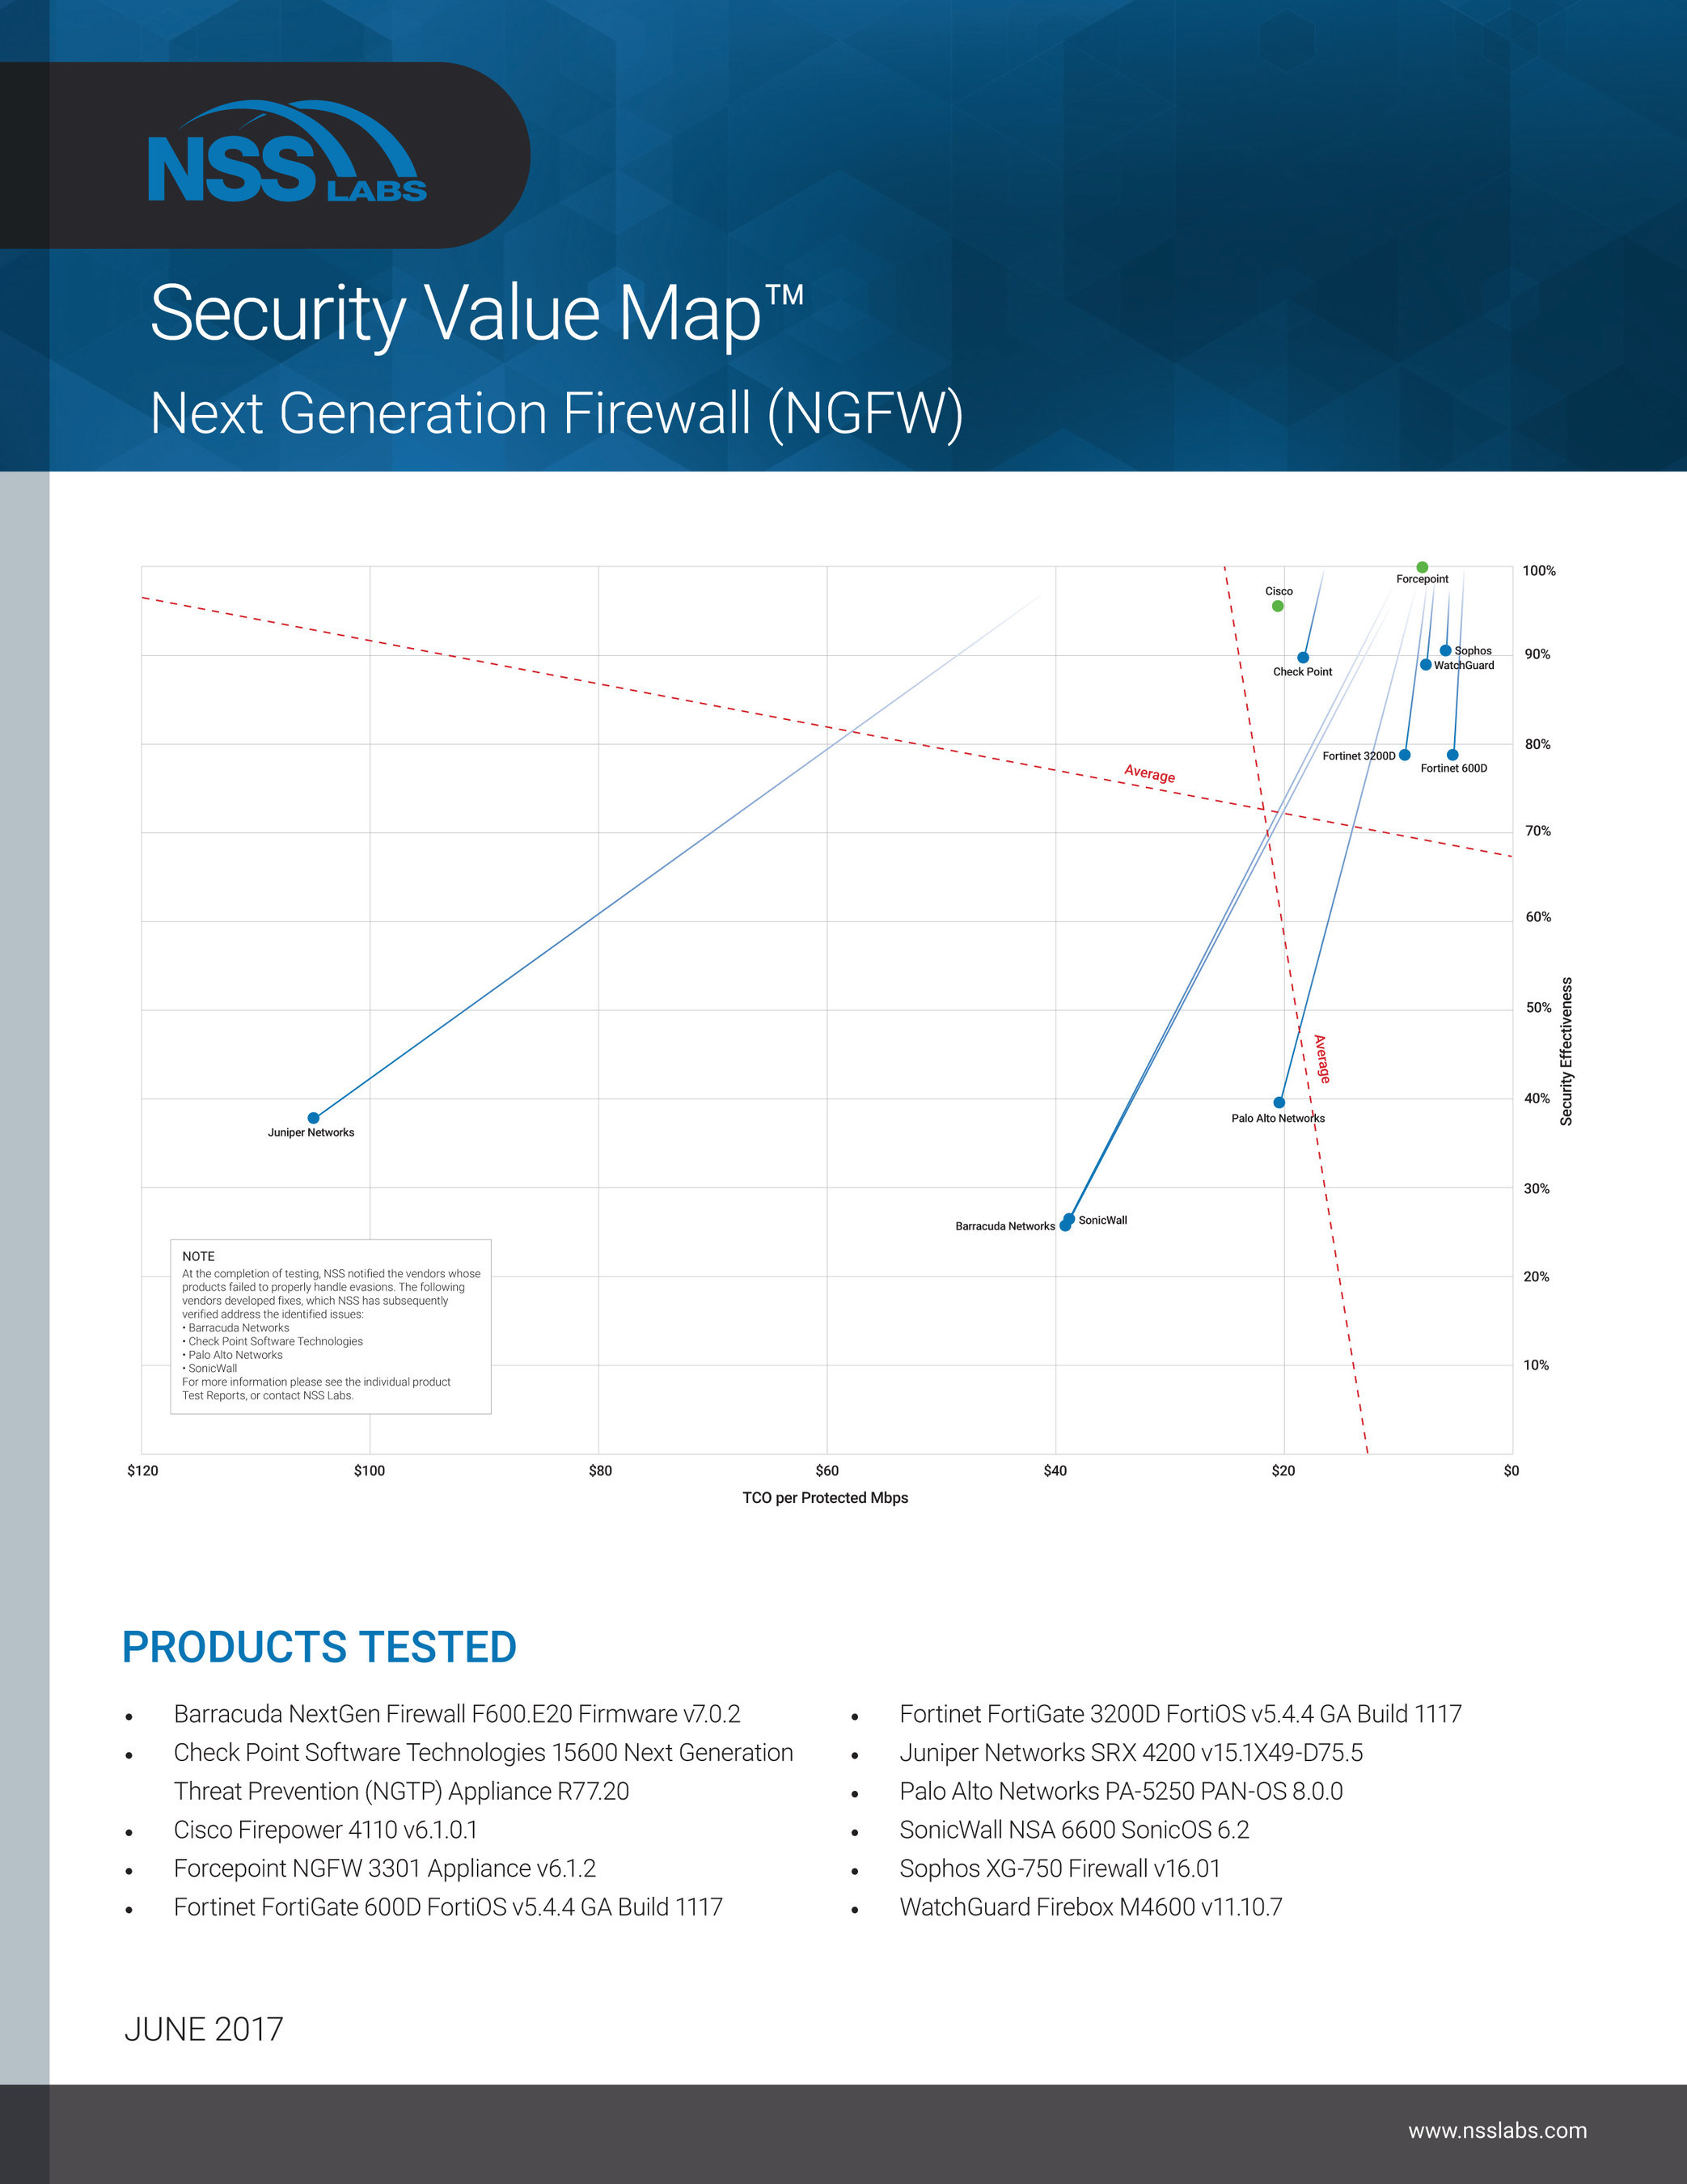 NSS Labs 2017 Next Generation Firewall Security Value Map™